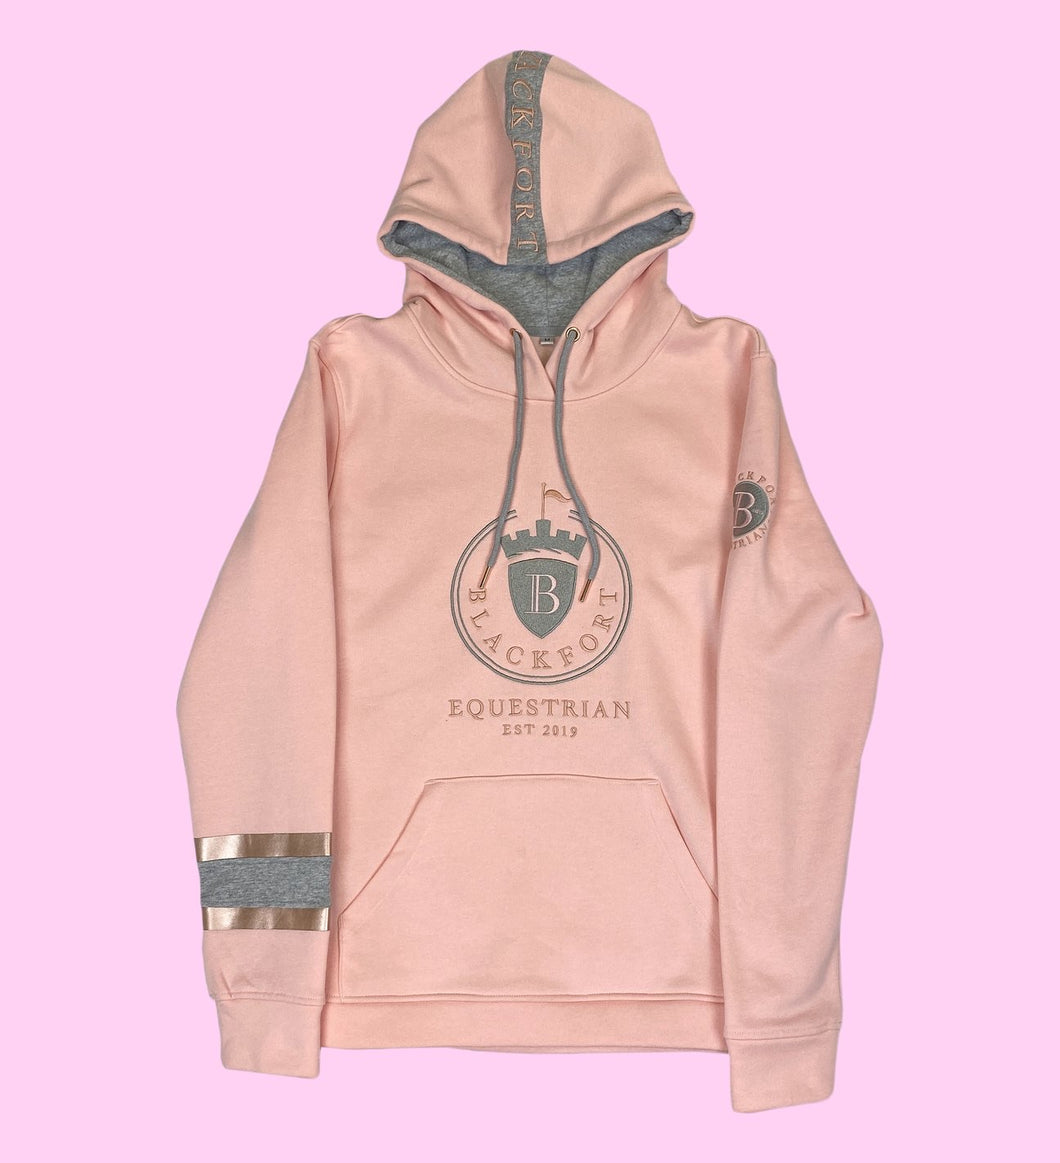 Blackfort Equestrian Hoodie - Light Pink / Rose Gold